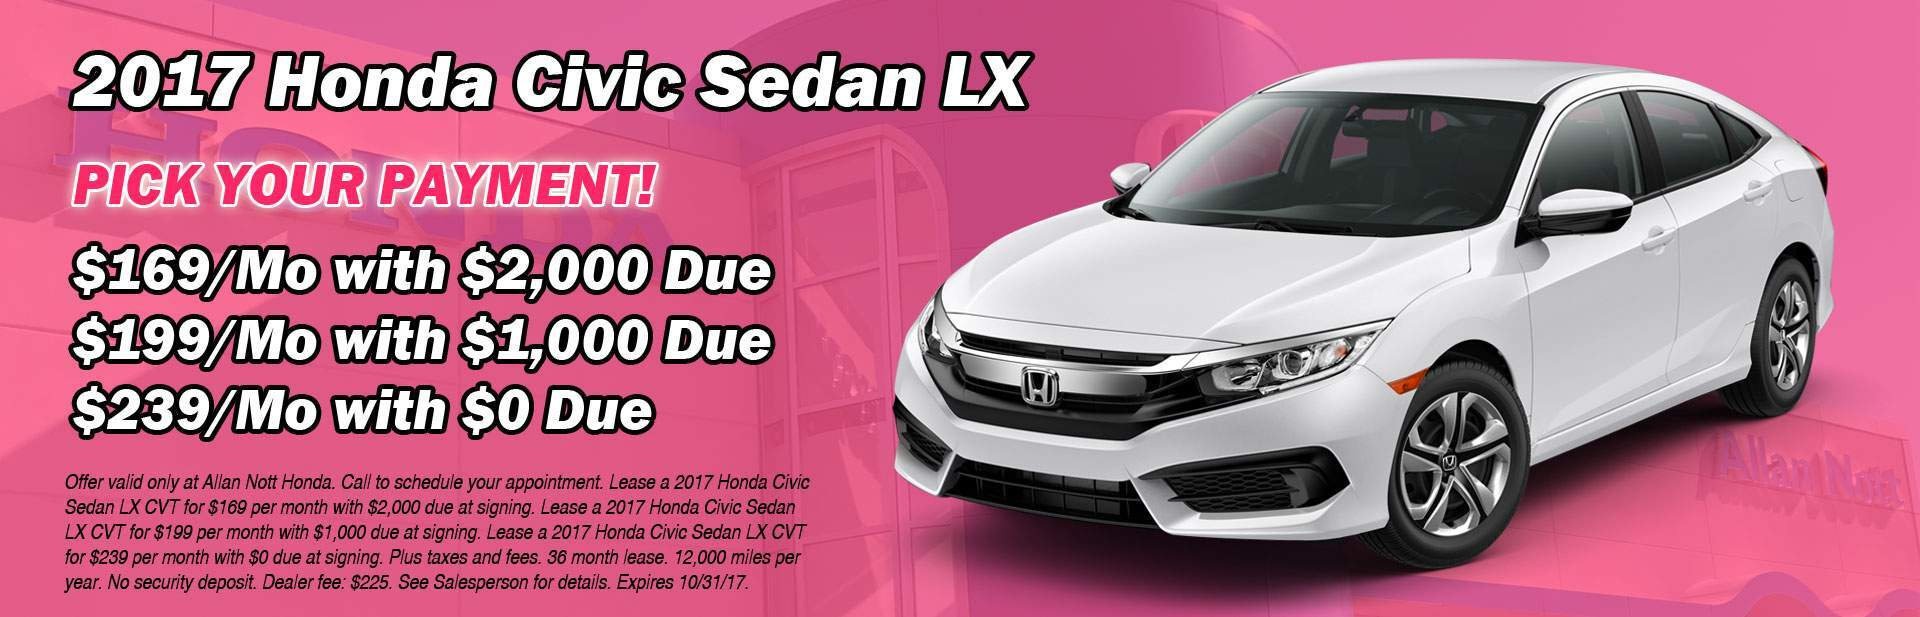 PICK YOUR PAYMENT! Lease a 2017 Honda Civic Sedan LX from Allan Nott today!